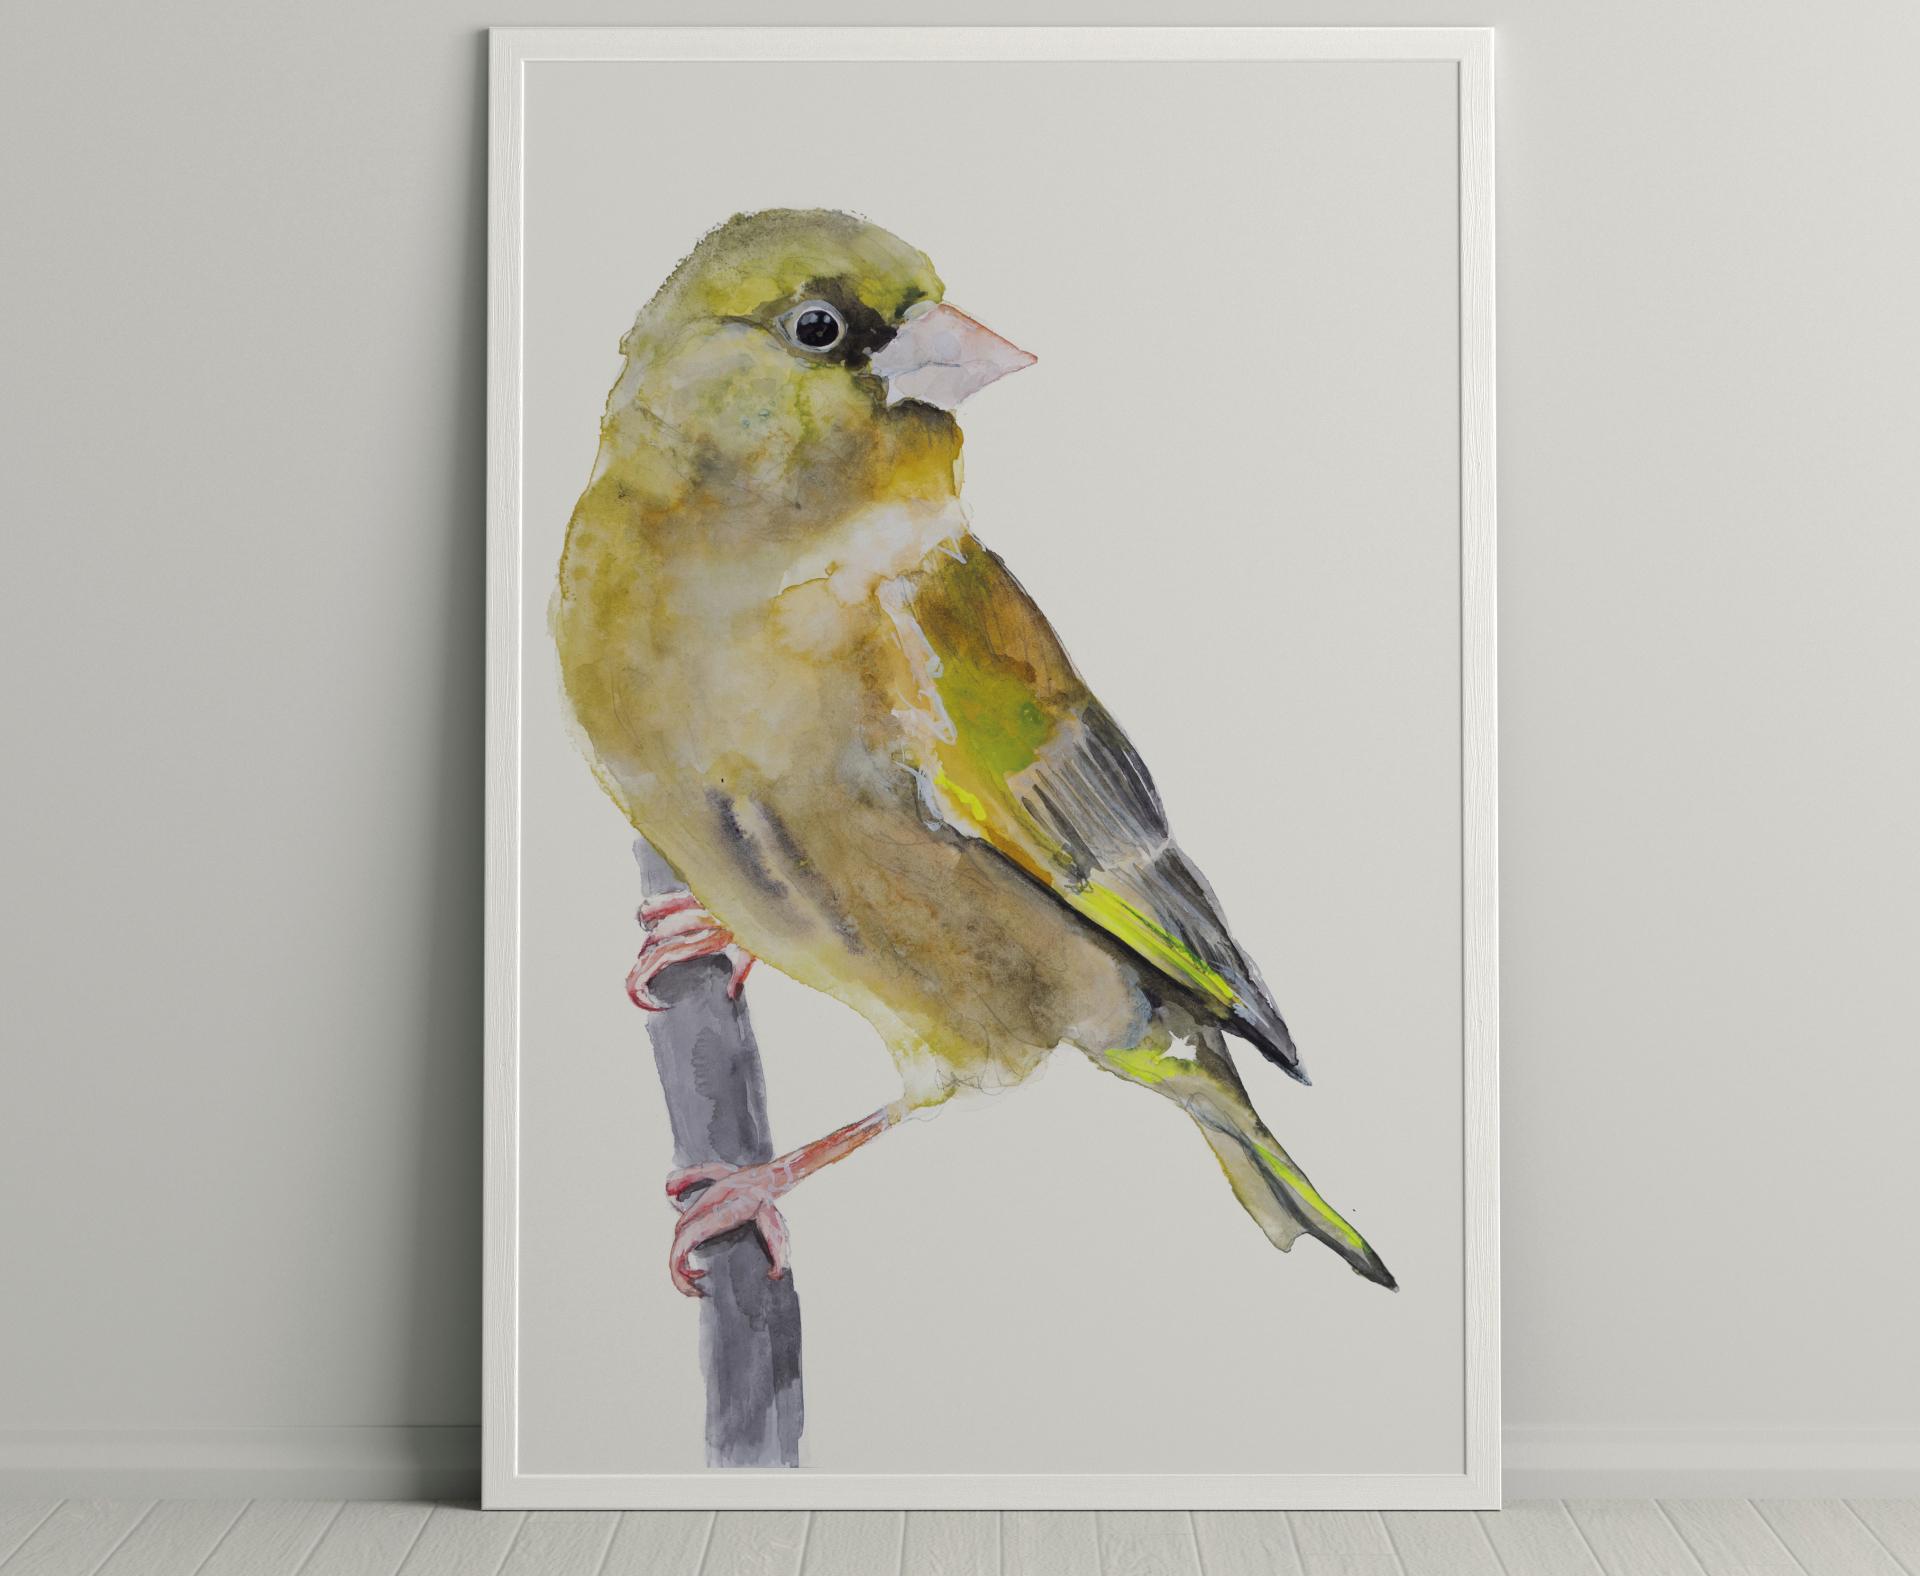 vogel illustratie aquarelverf